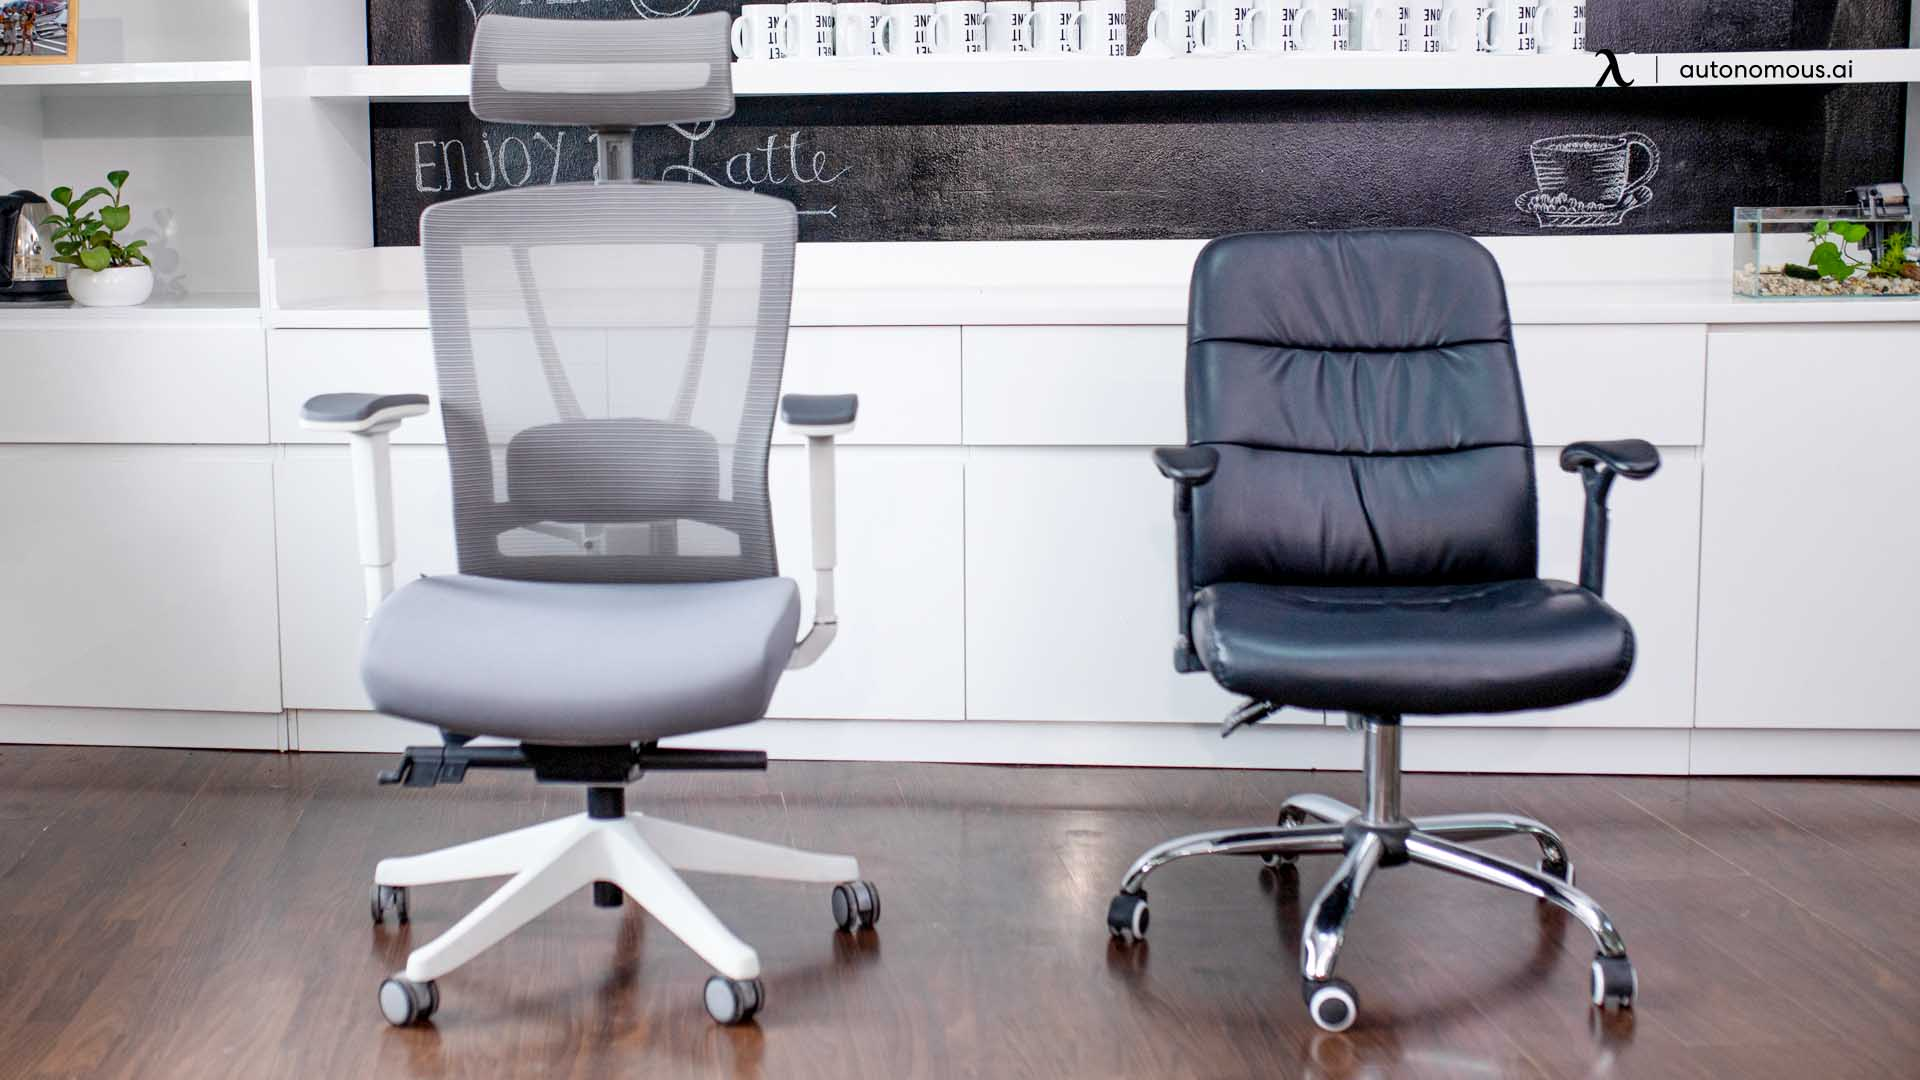 The Pros and Cons of Getting an Ergonomic Chair